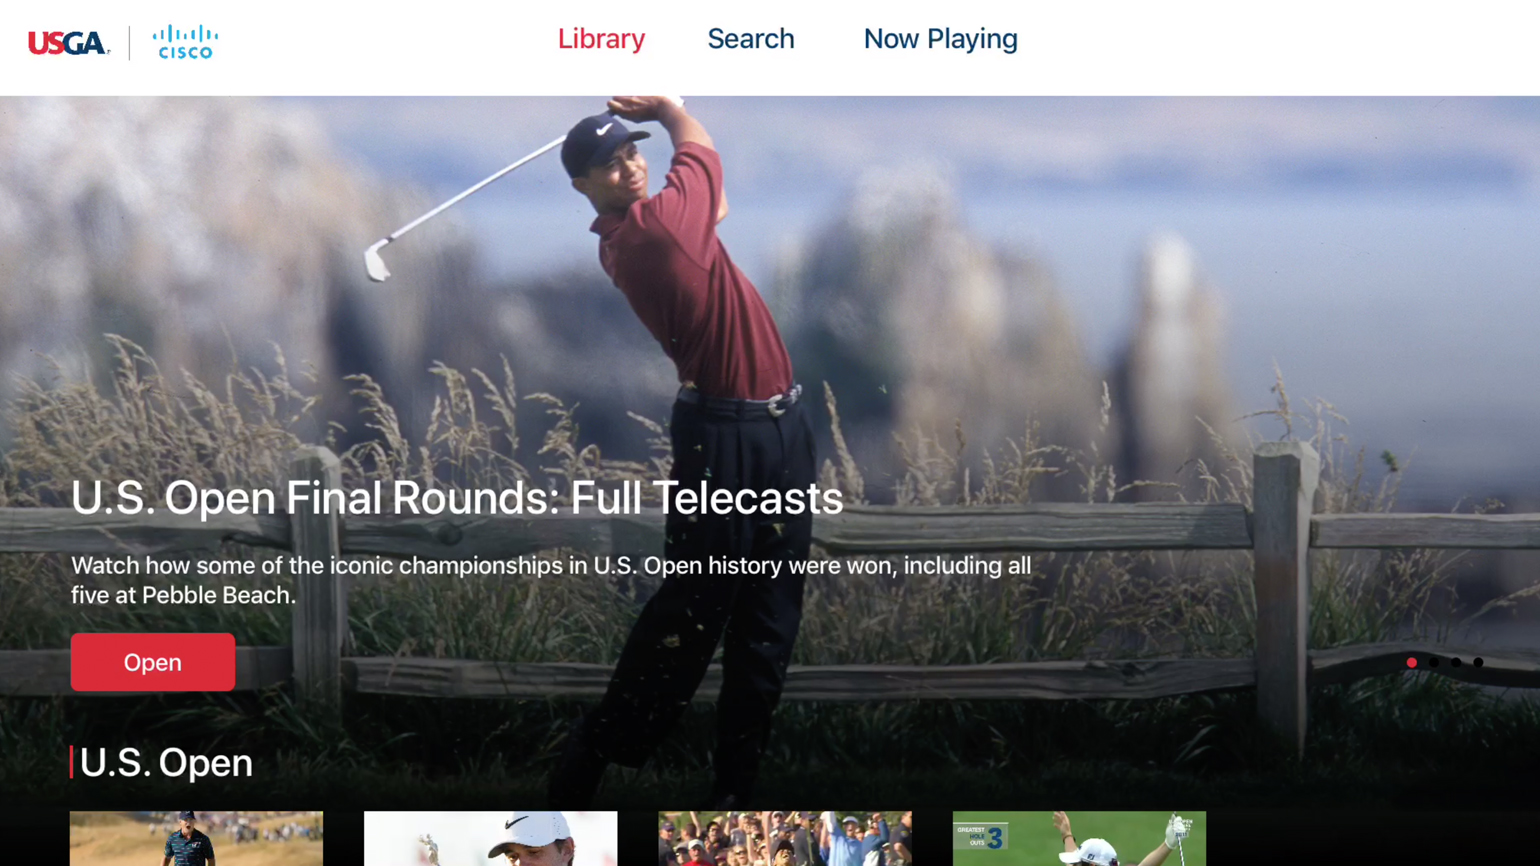 USGA Launches Over-The-Top App in Partnership with Cisco